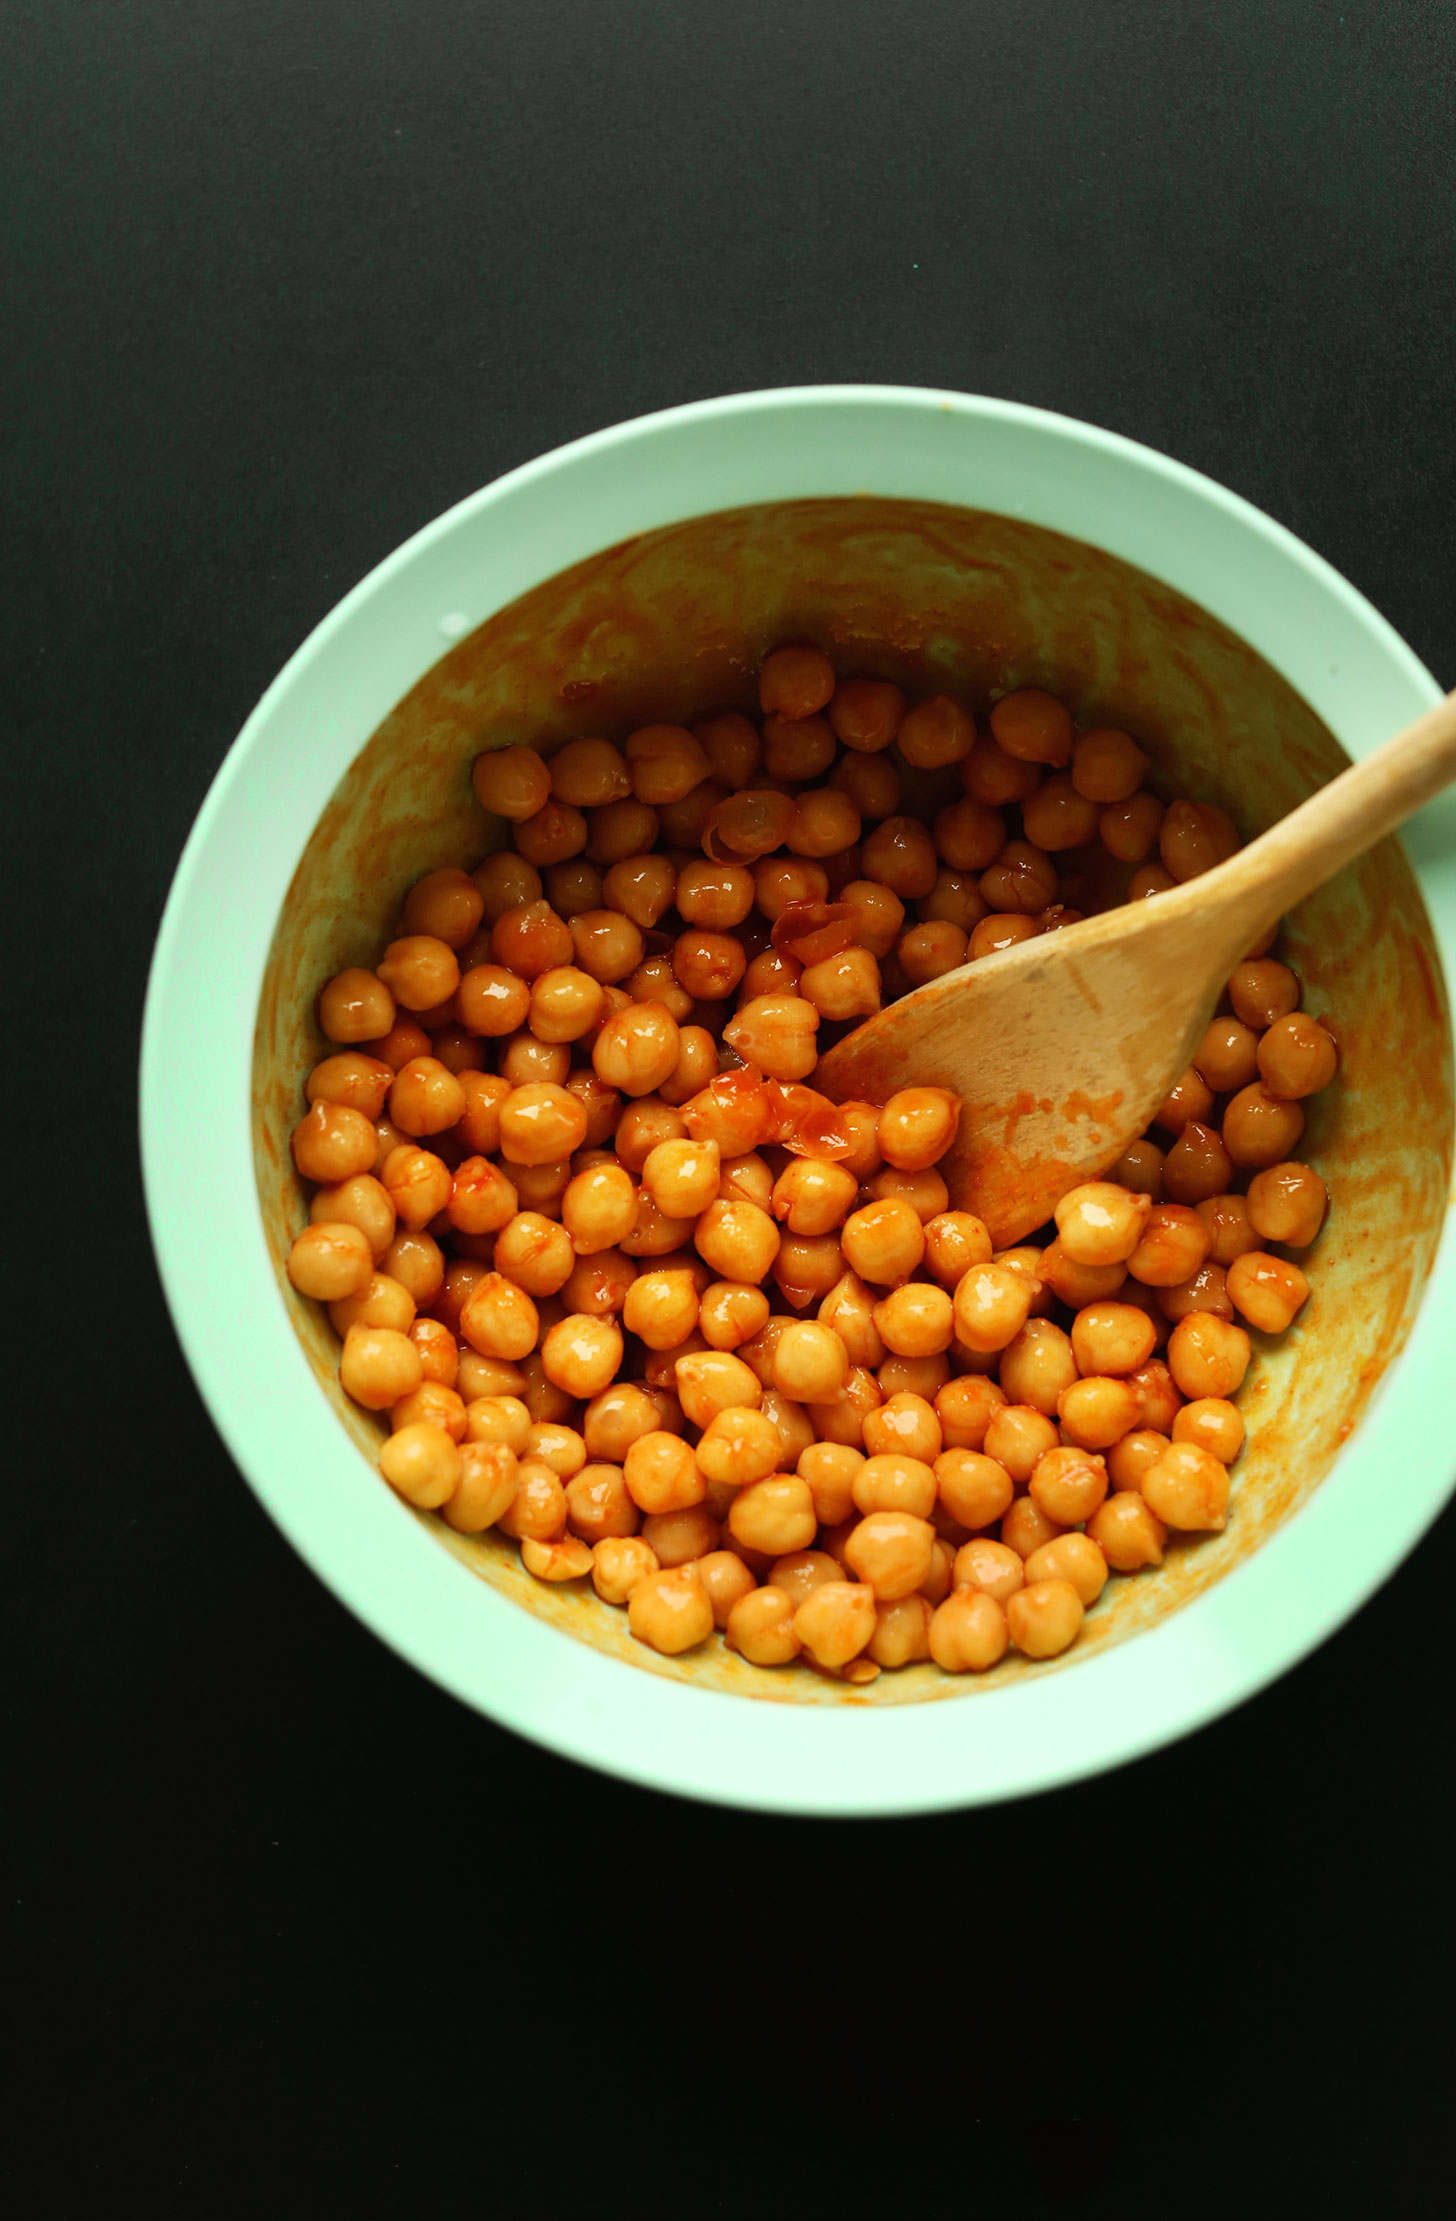 Stirring buffalo-style sauce onto chickpeas for a protein-packed vegan meal